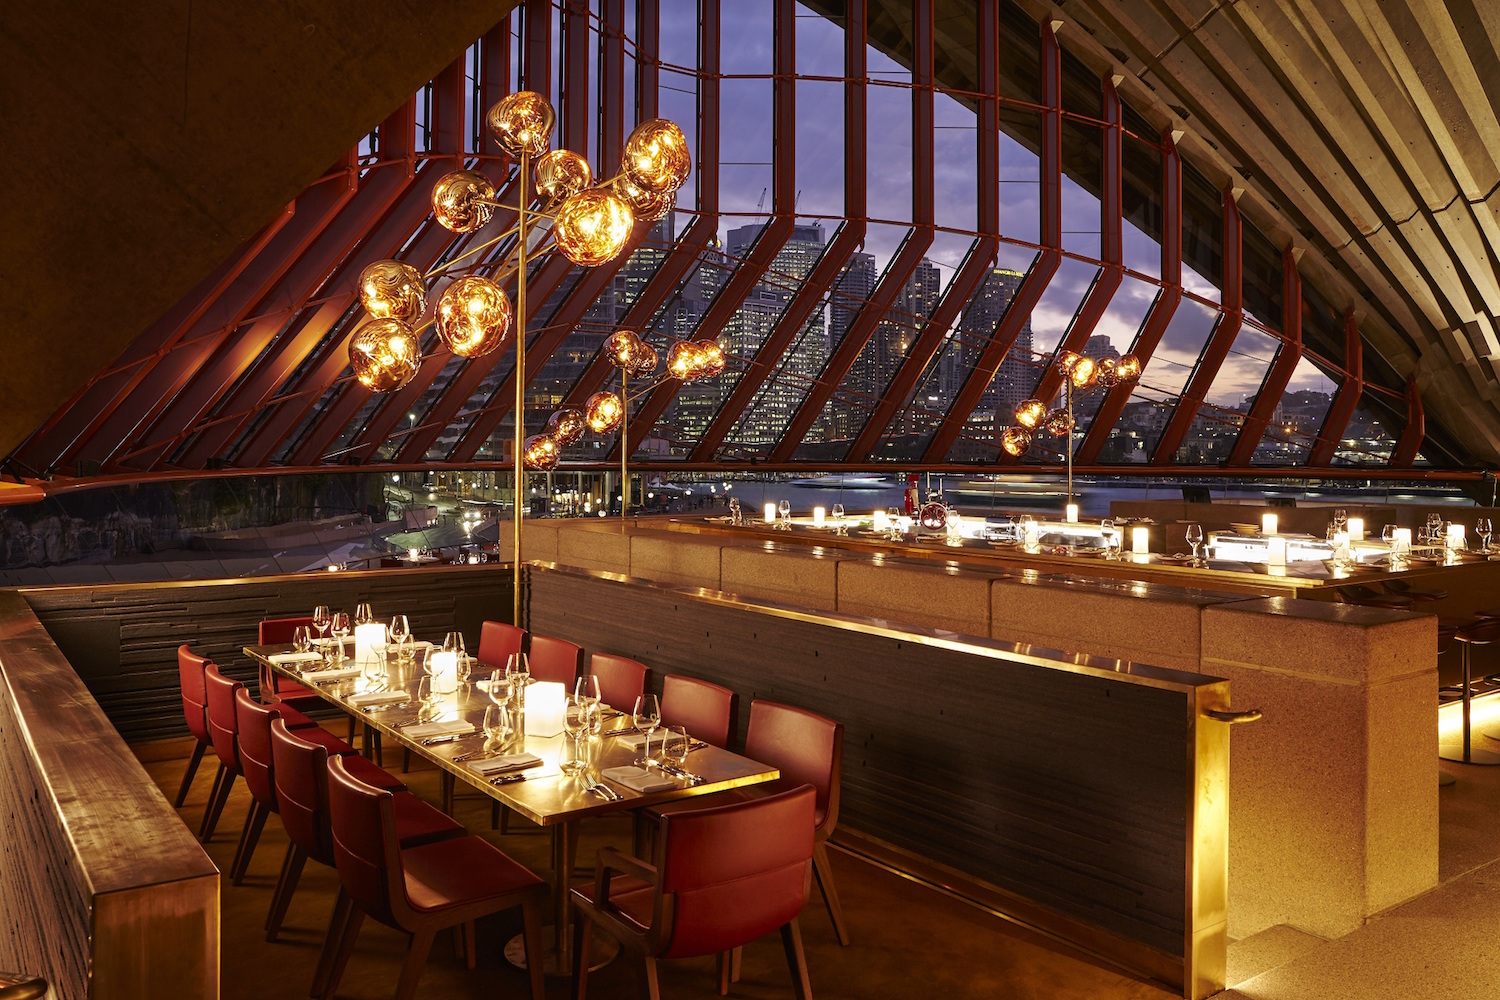 Bennelong restaurant at Sydney Opera House